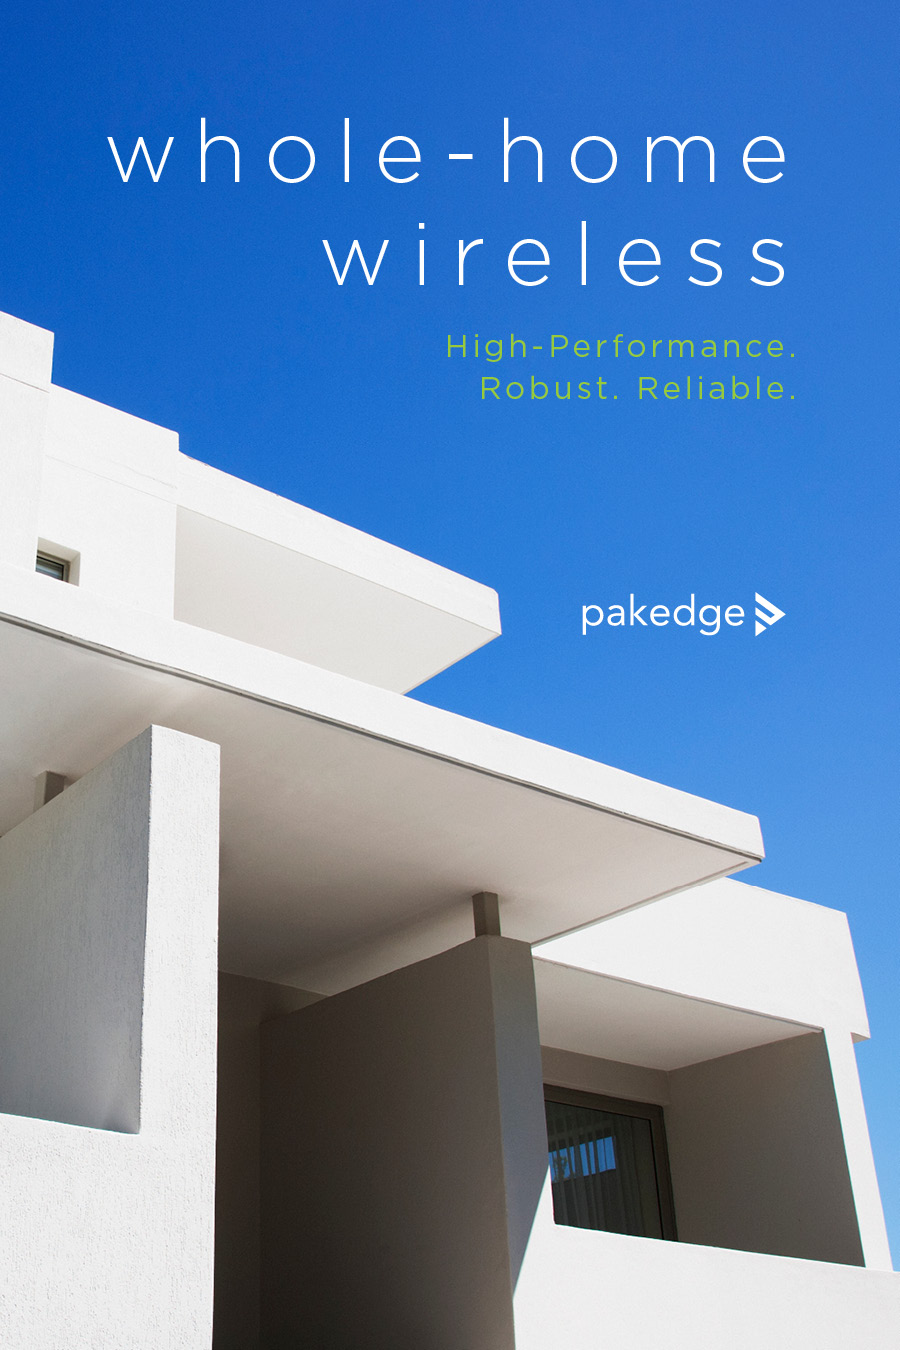 Pakedge - Whole Home Wireless